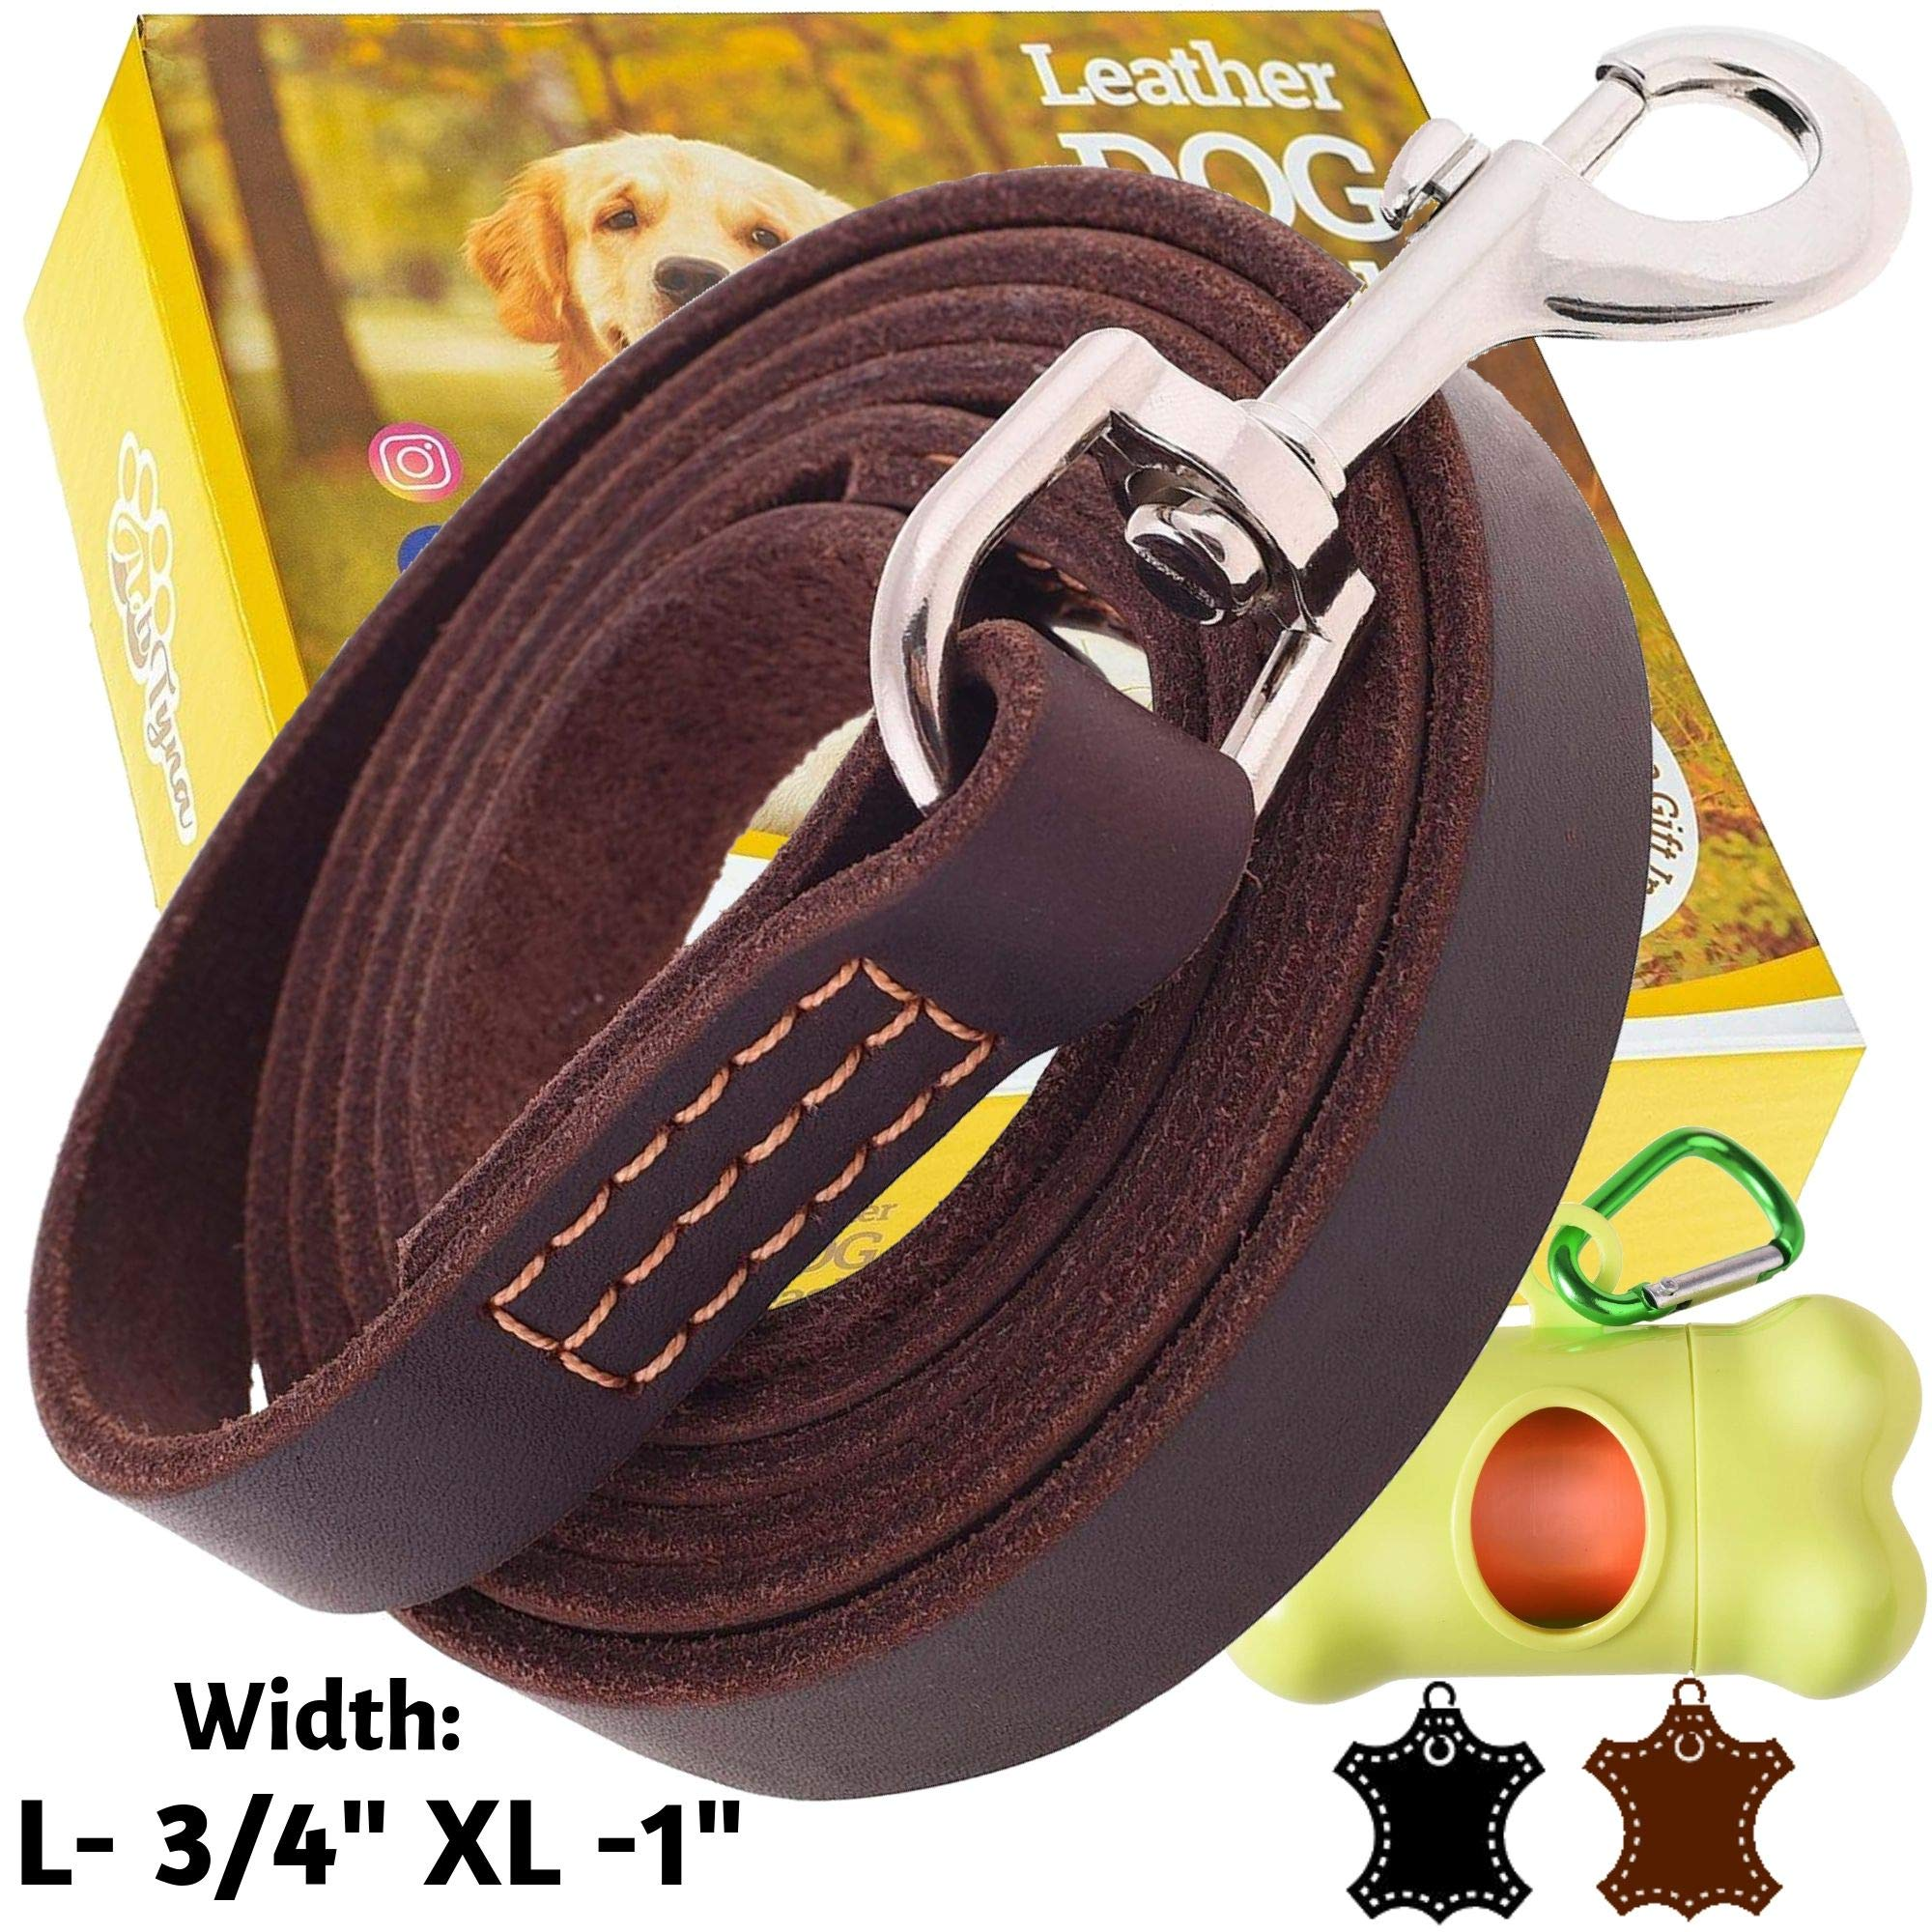 ADITYNA - Leather Dog Leash 6 Foot x 3/4 inch - Soft and Strong Leather Leash for Large and Medium Dogs - Dog Training Leash (Brown) by ADITYNA